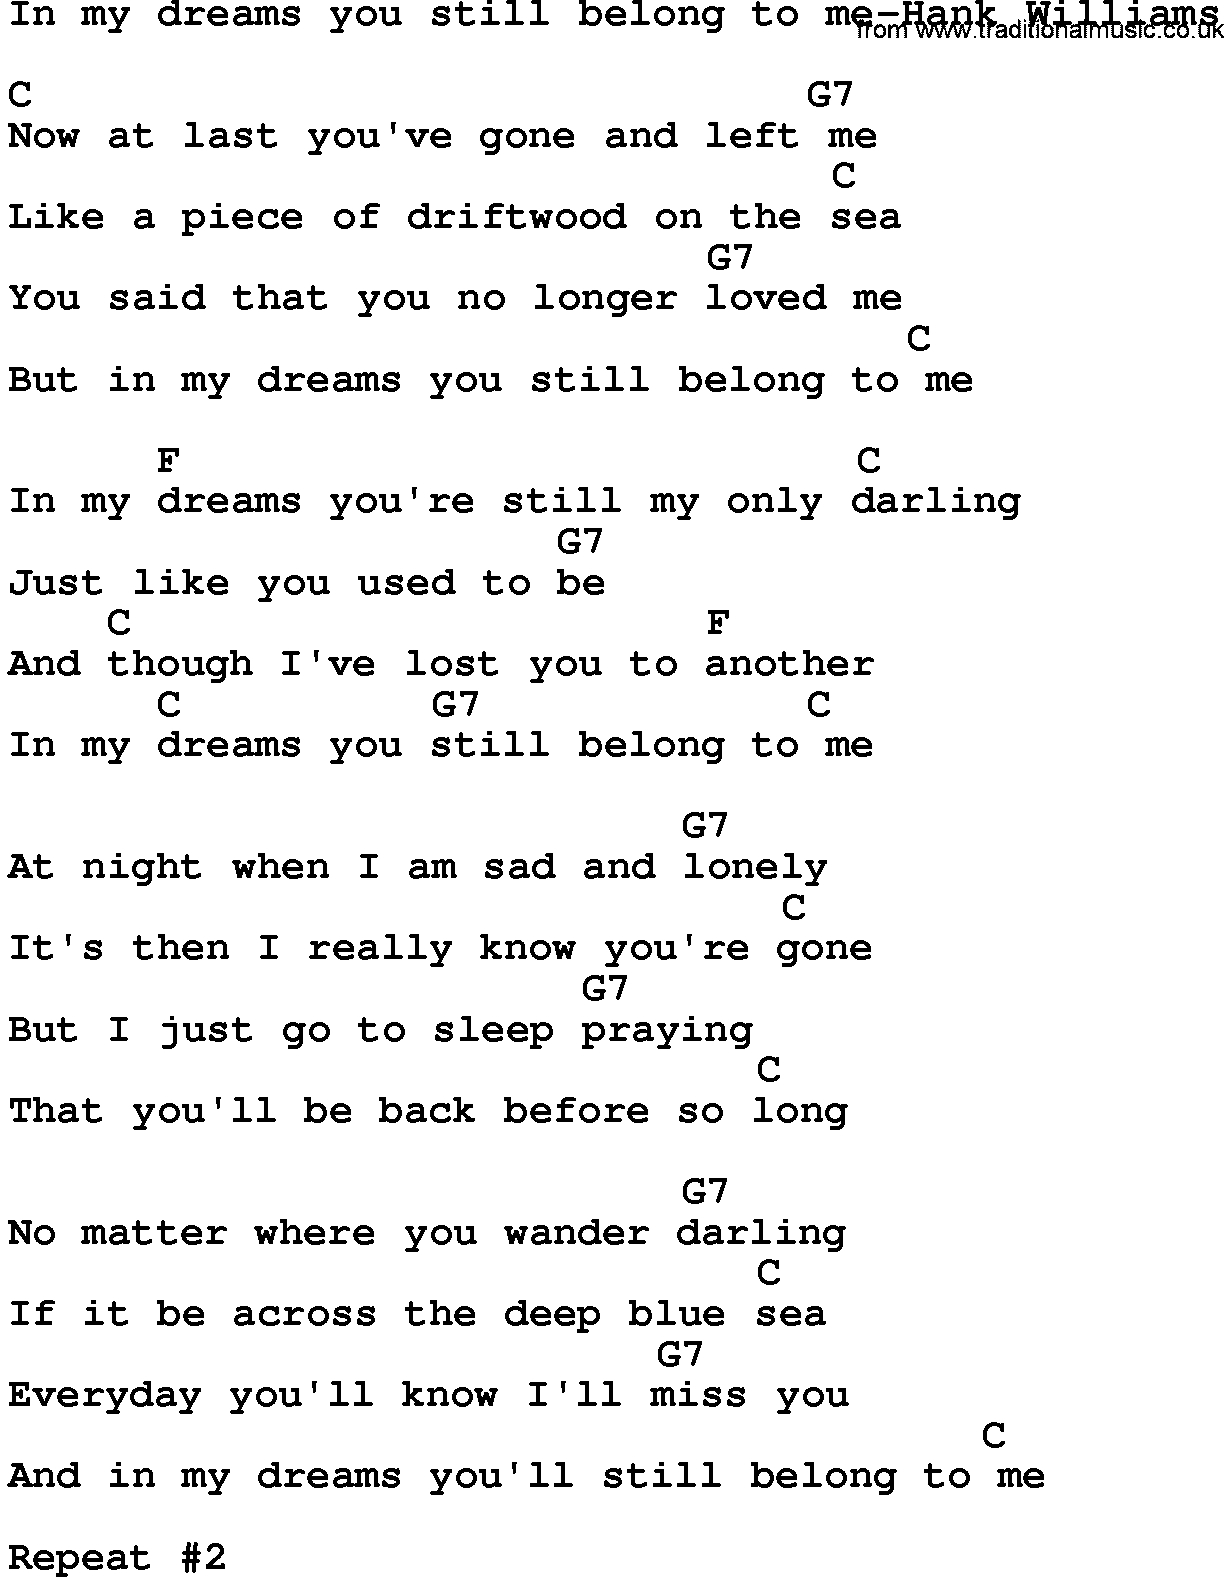 You Belong With Me Chords Country Musicin My Dreams You Still Belong To Me Hank Williams